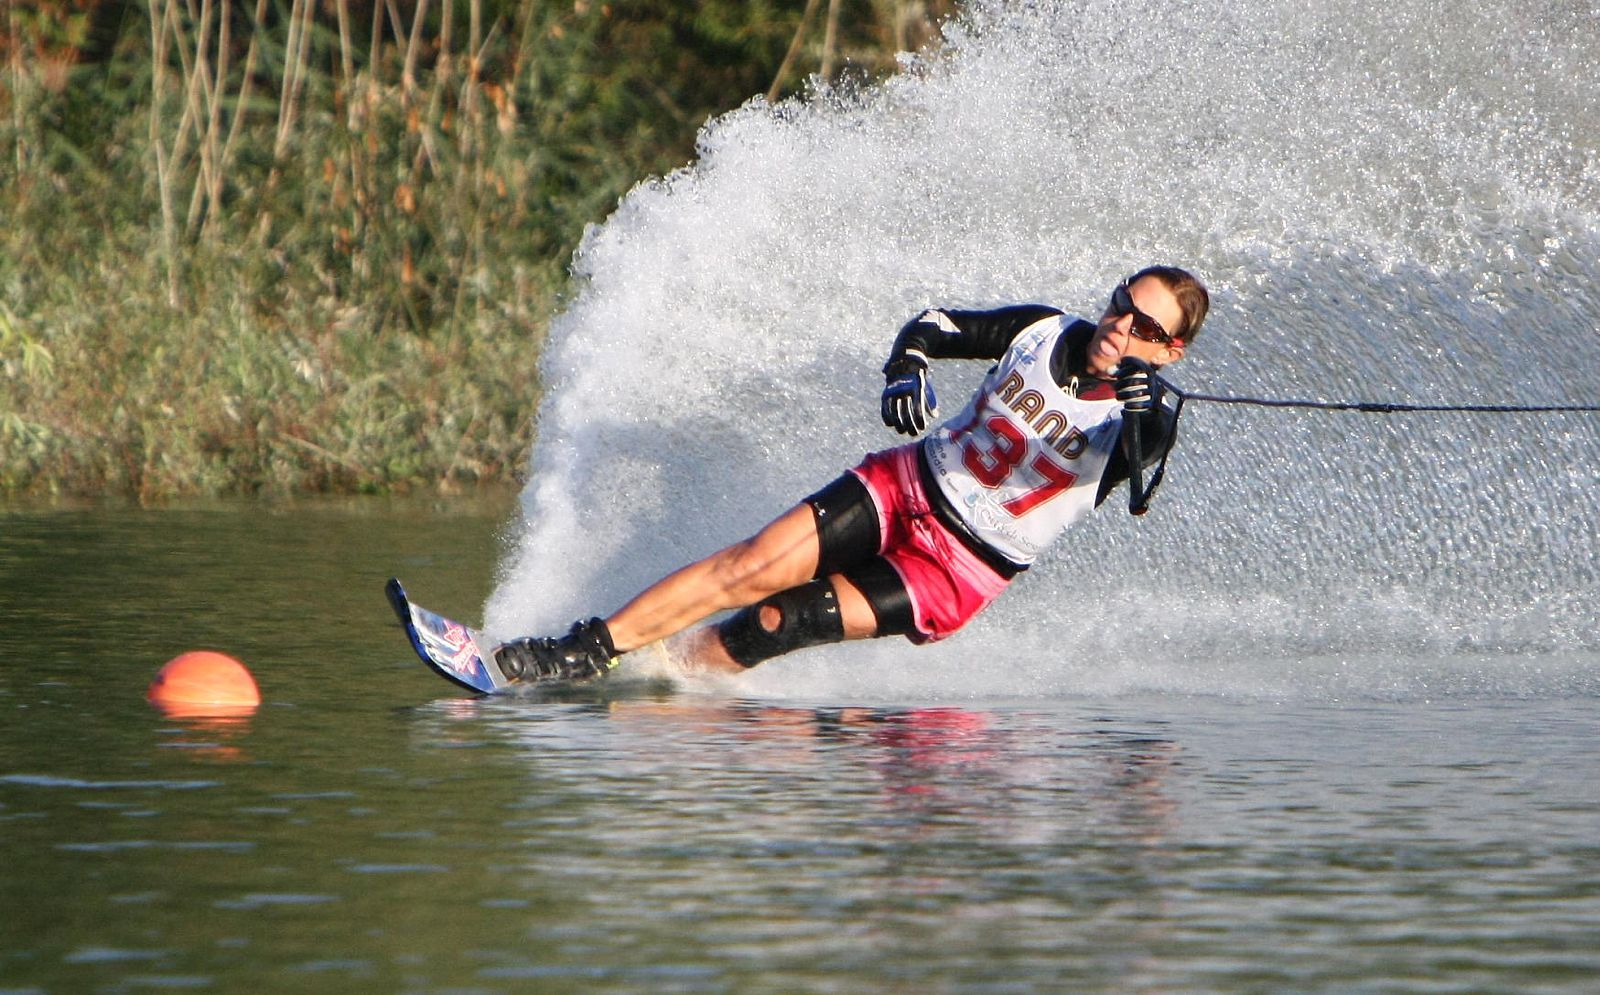 Slalom at The Worlds